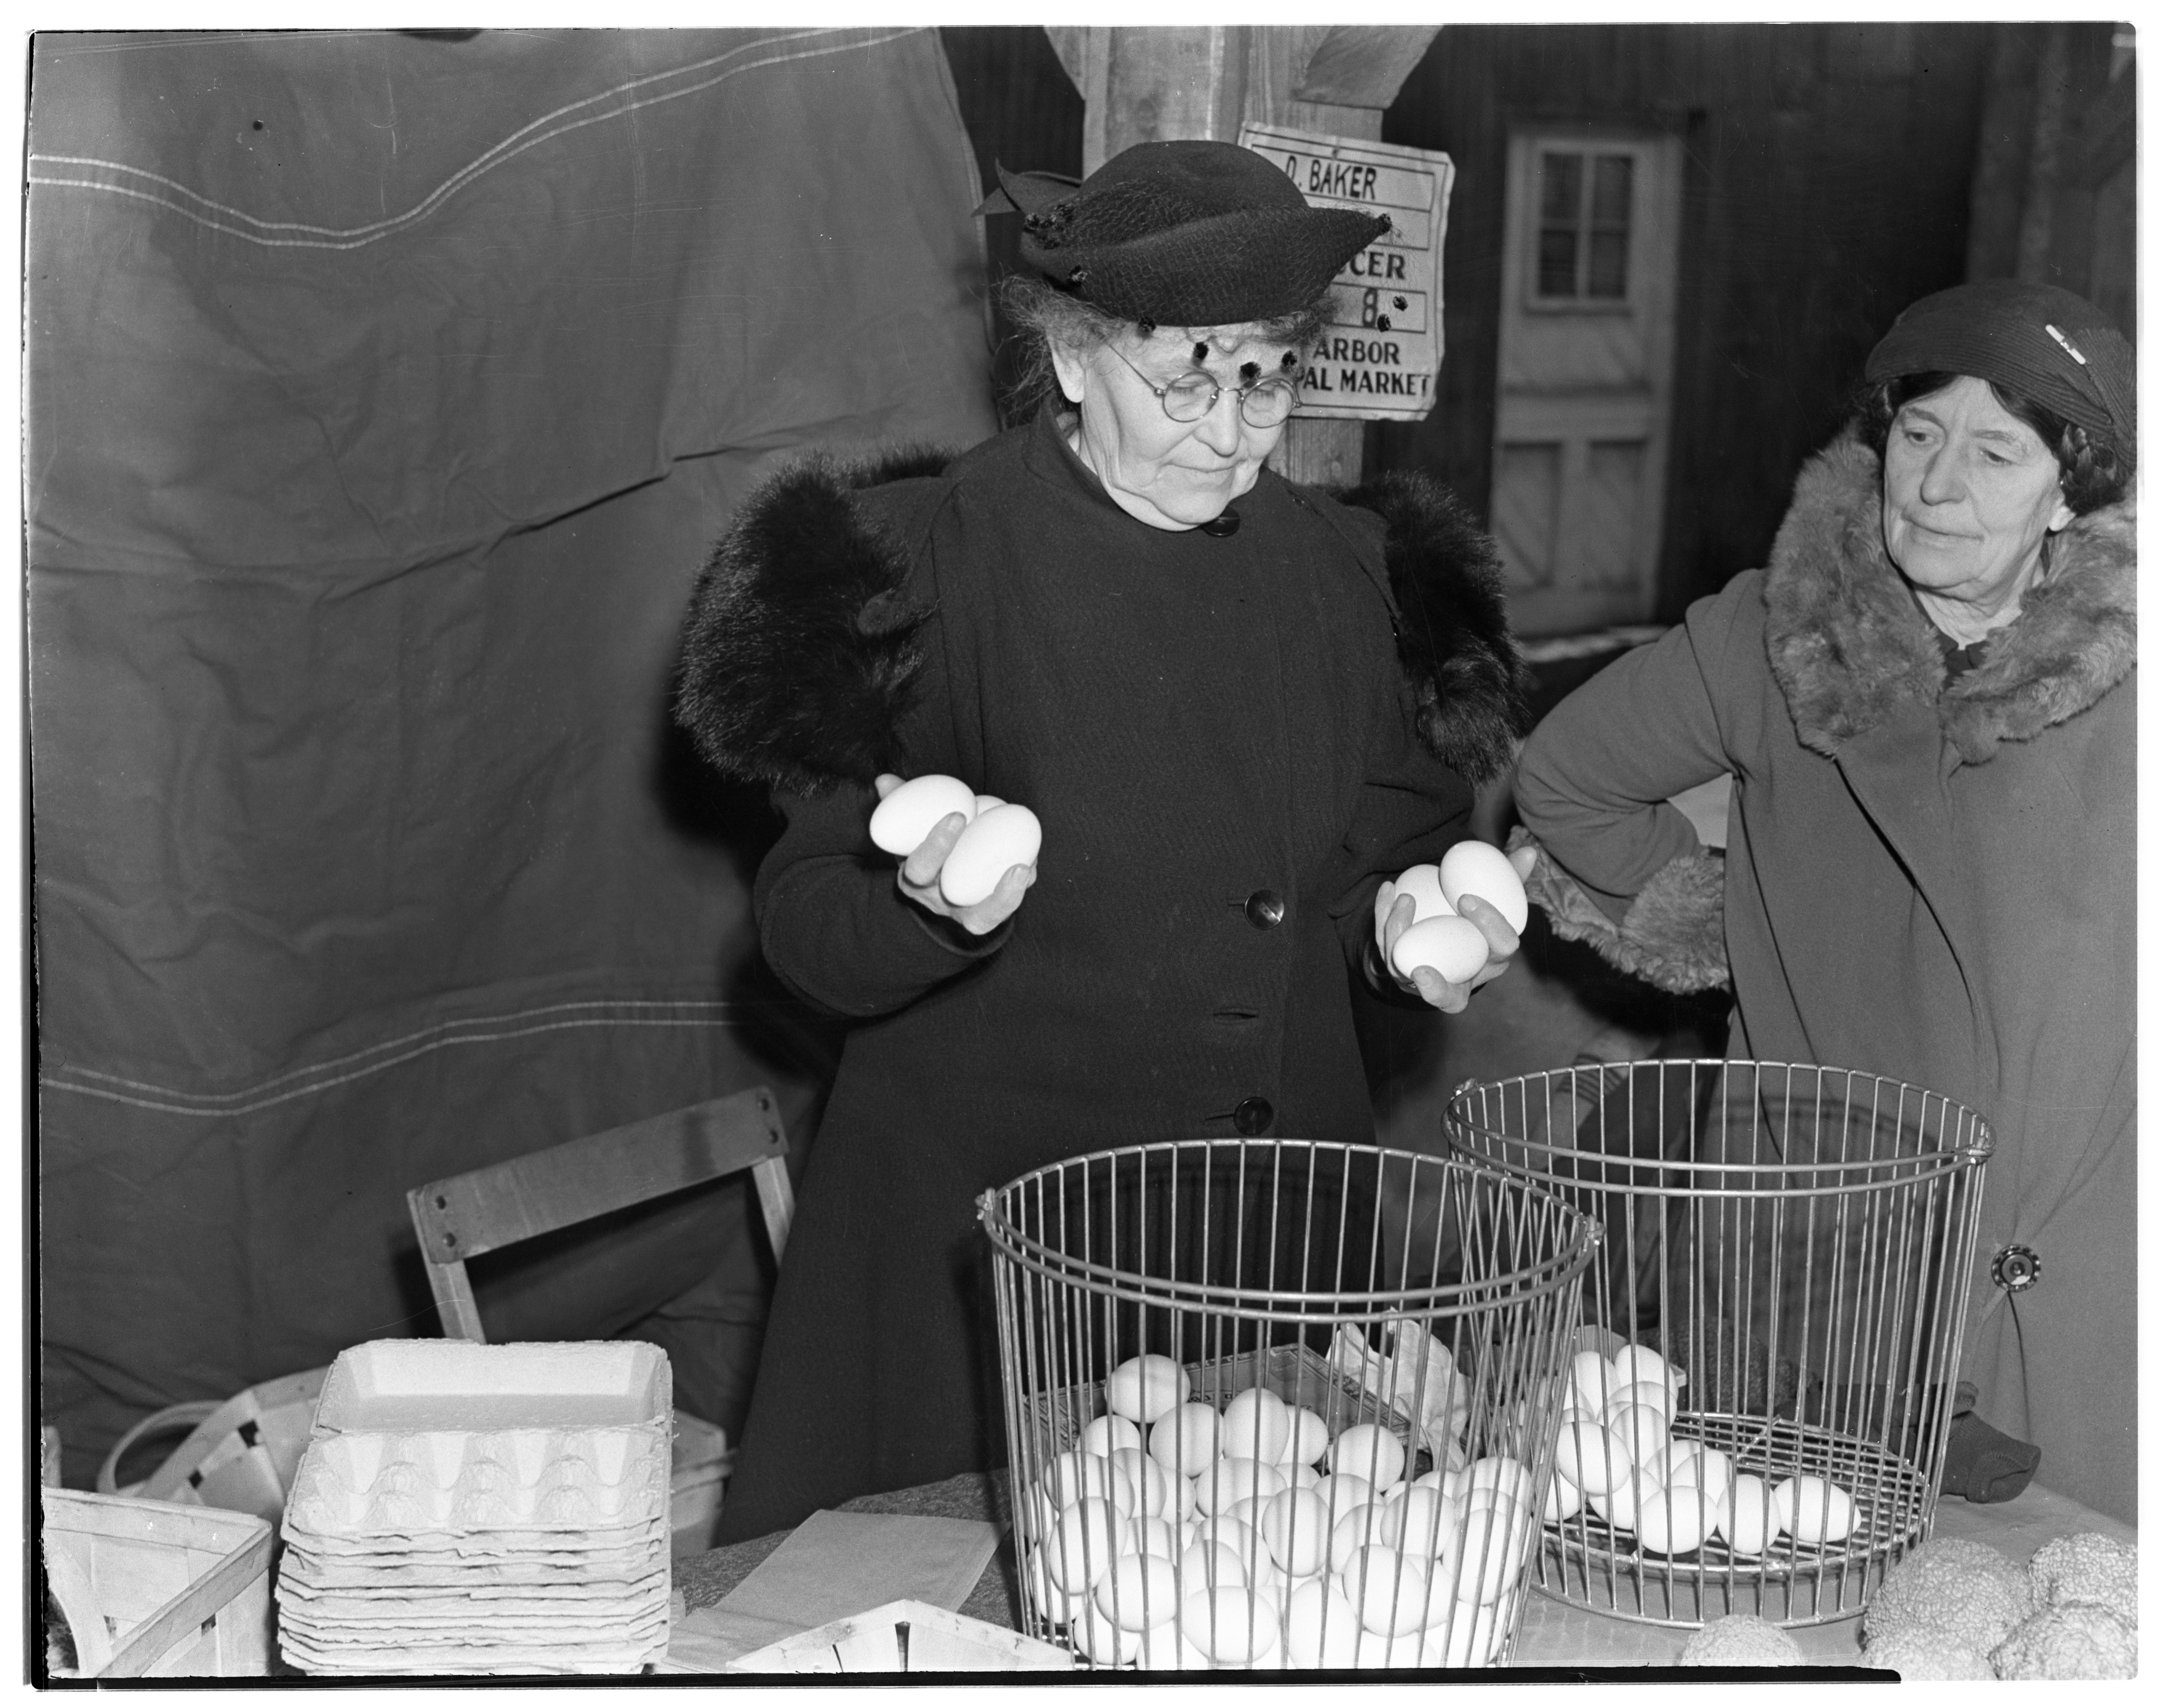 Marcia Baker With Double Yolk Eggs At The Ann Arbor Municipal Market, November 1938 image